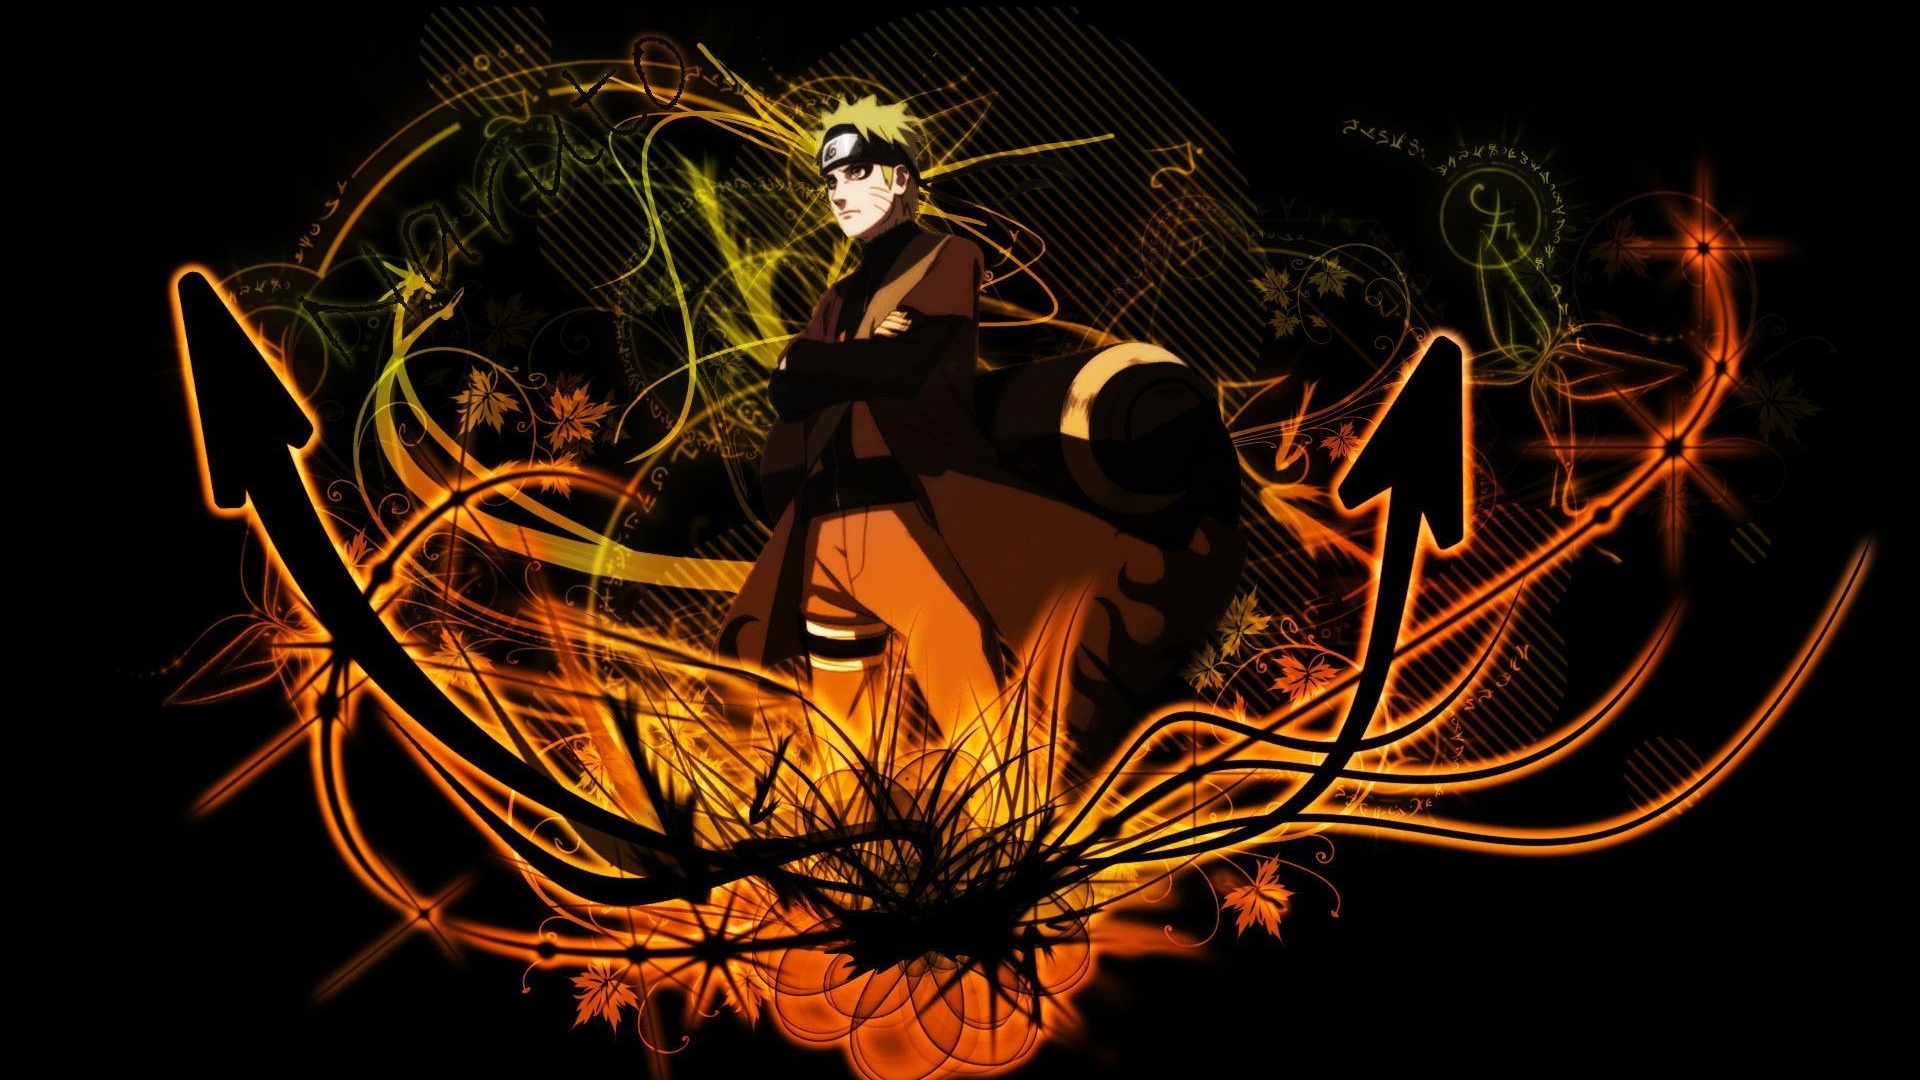 Free Download Naruto Live Wallpaper For Pc 55 Images 1920x1200